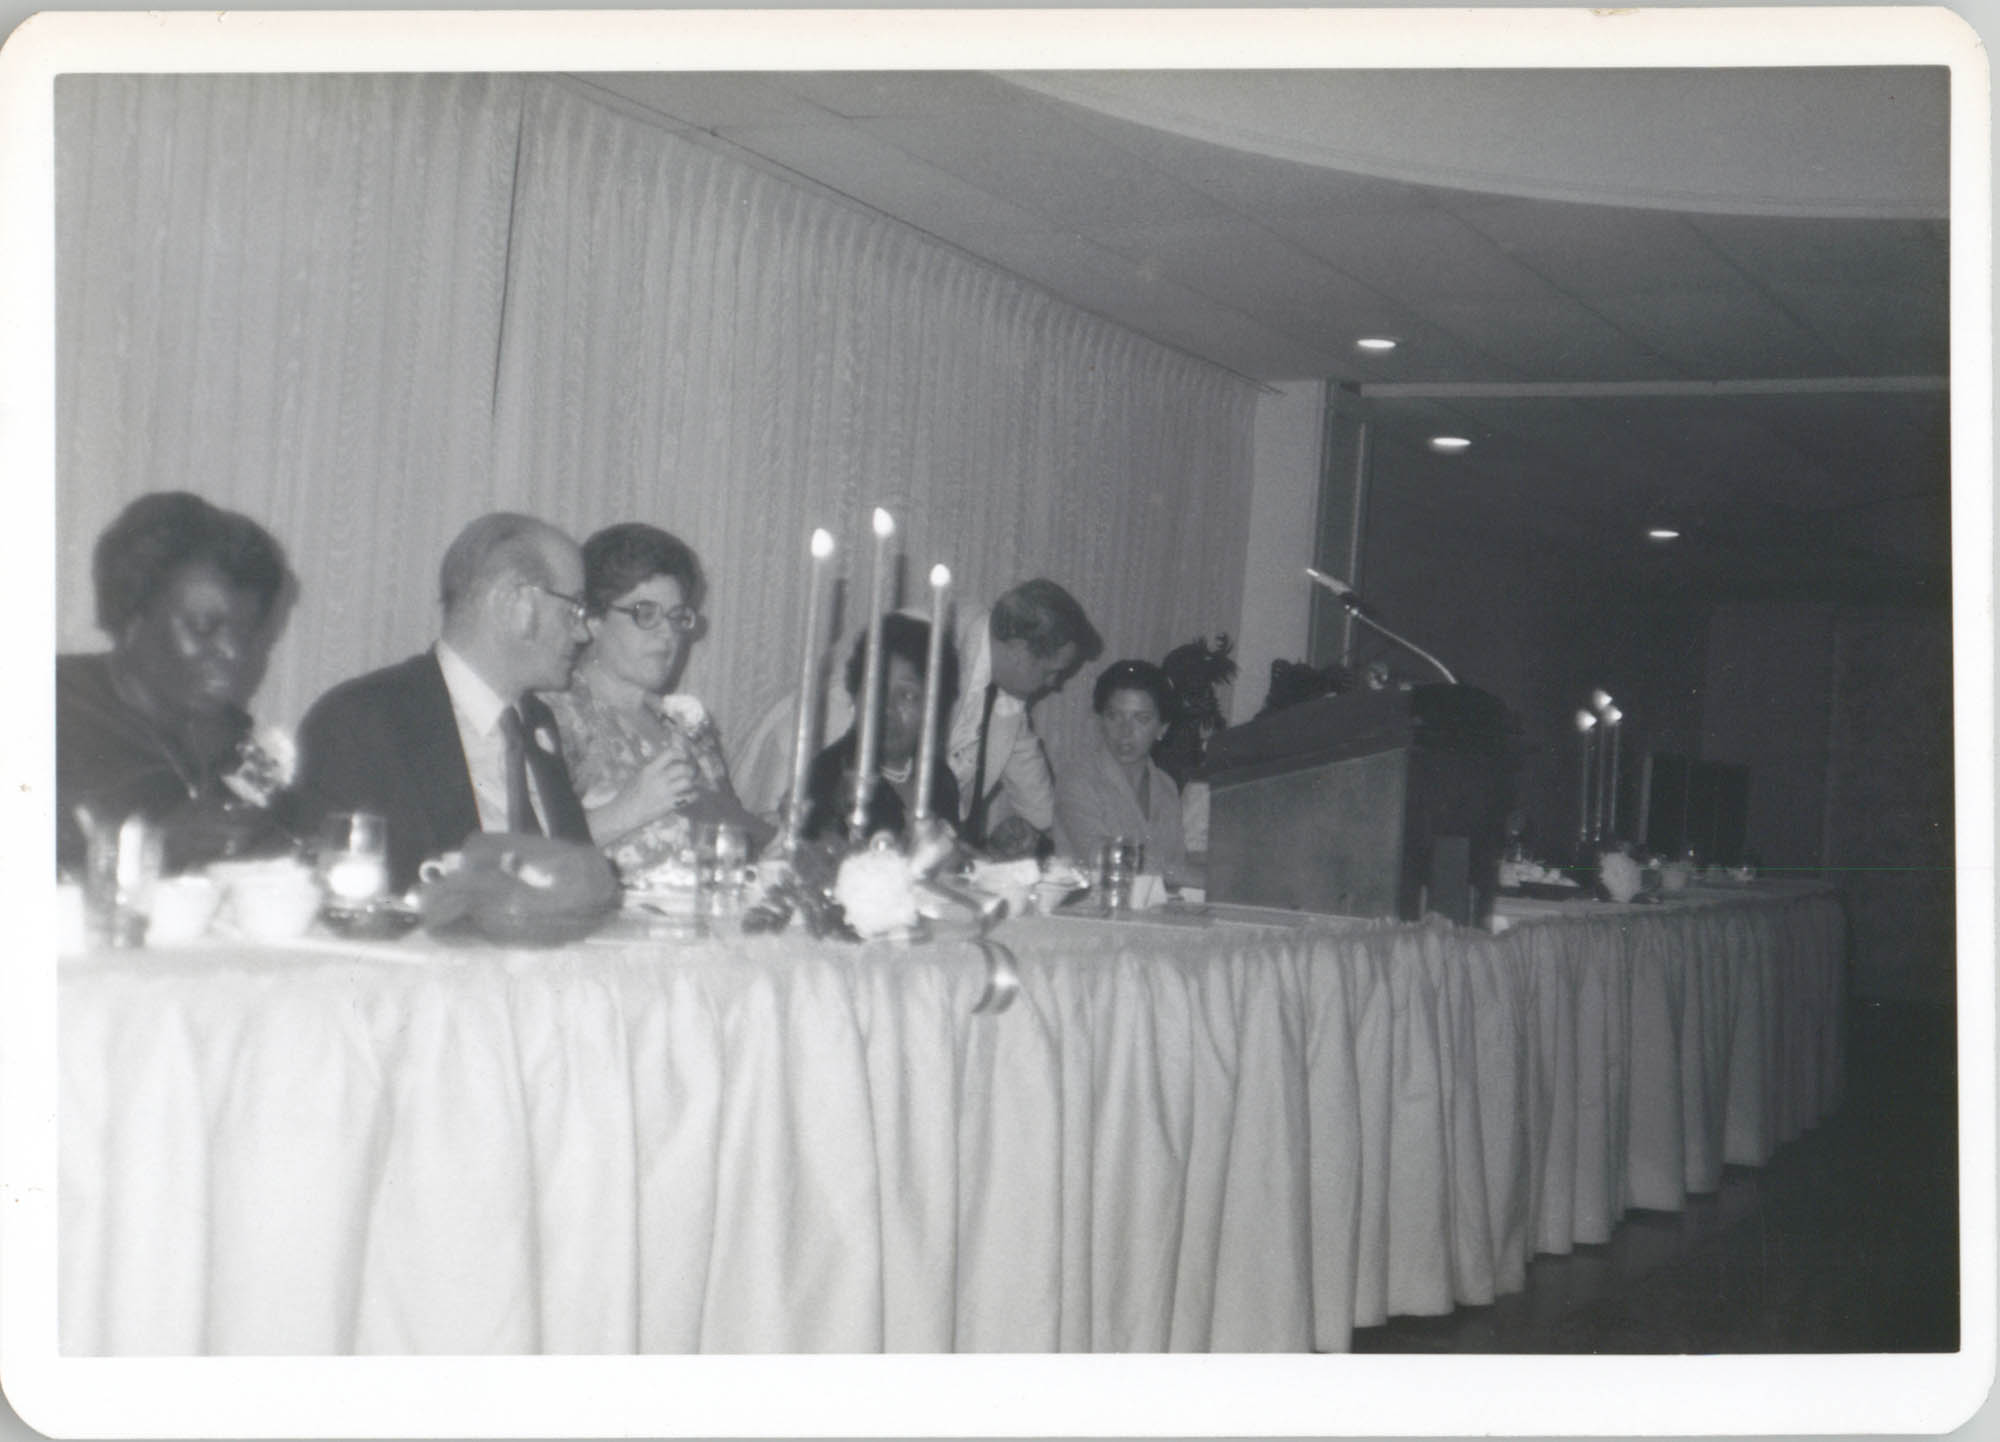 Photograph of People Seated at a Banquet Table